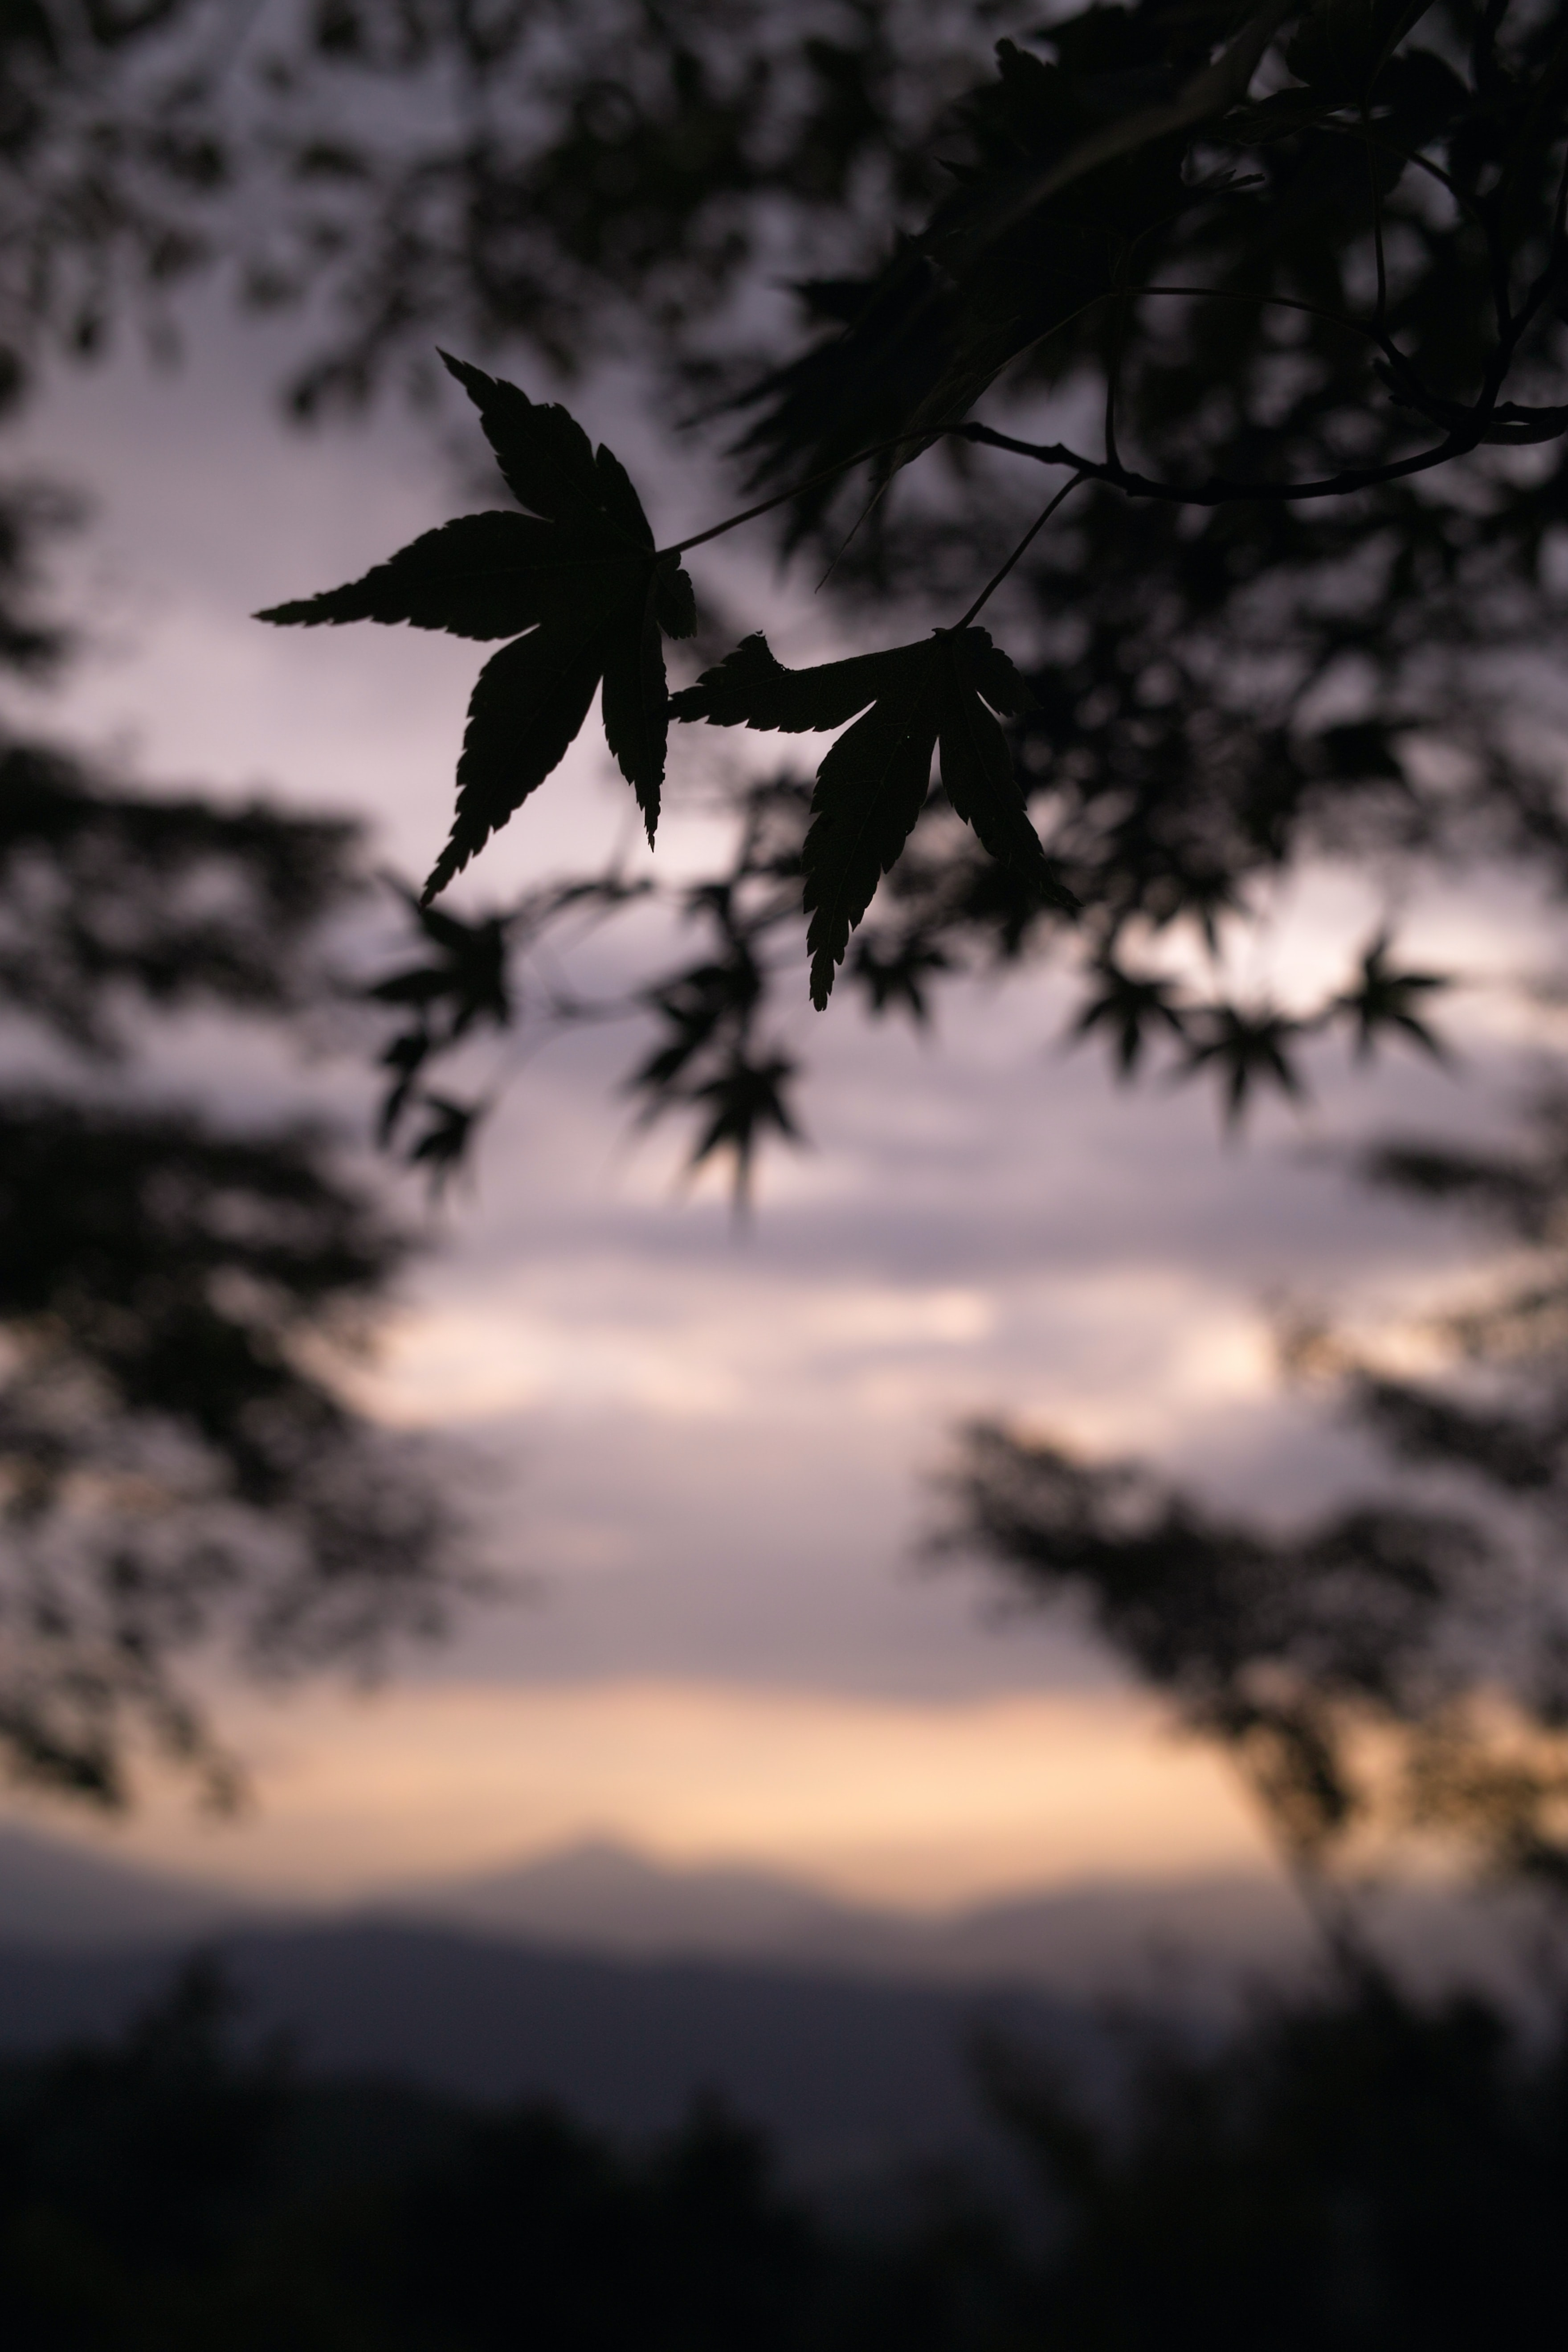 The silhouette of leaves during sunset at Mount Takao